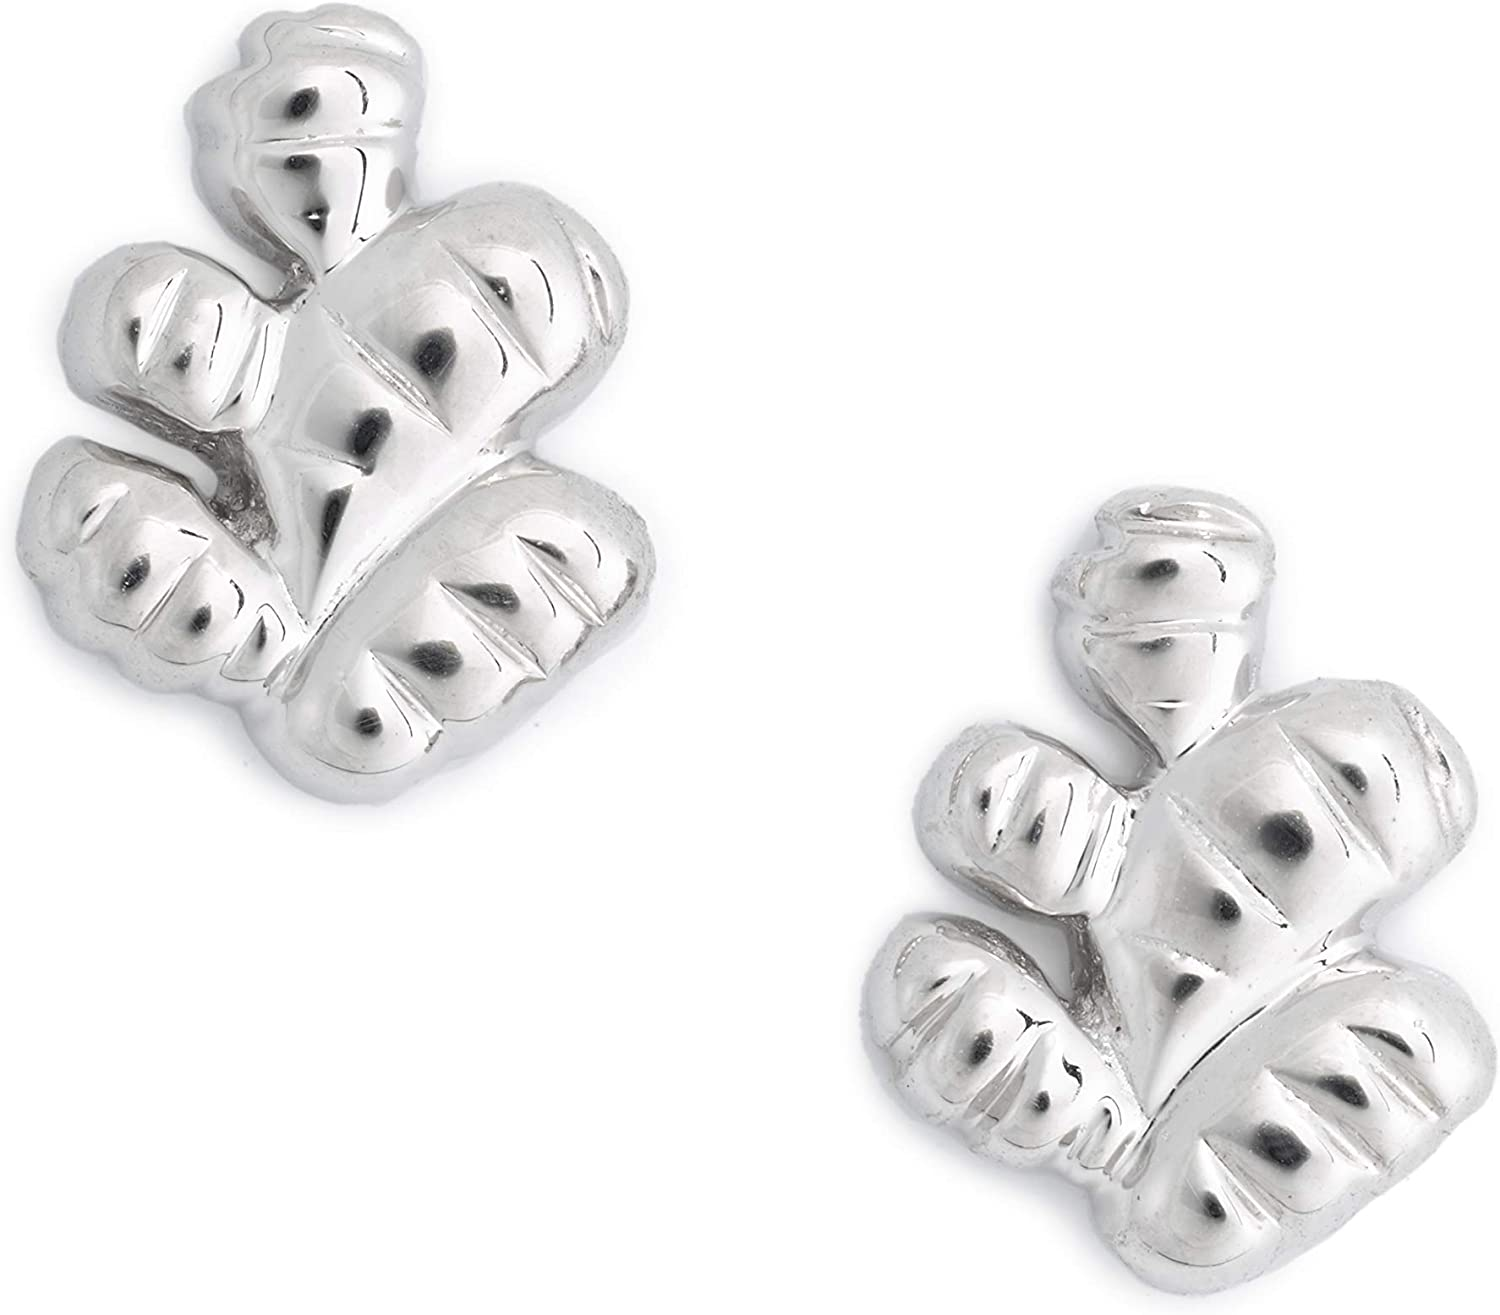 Delicacies Ginger Sterling Silver Stud Earrings, Food Jewelry for Food Lovers, Chefs, Cooks and Epicureans